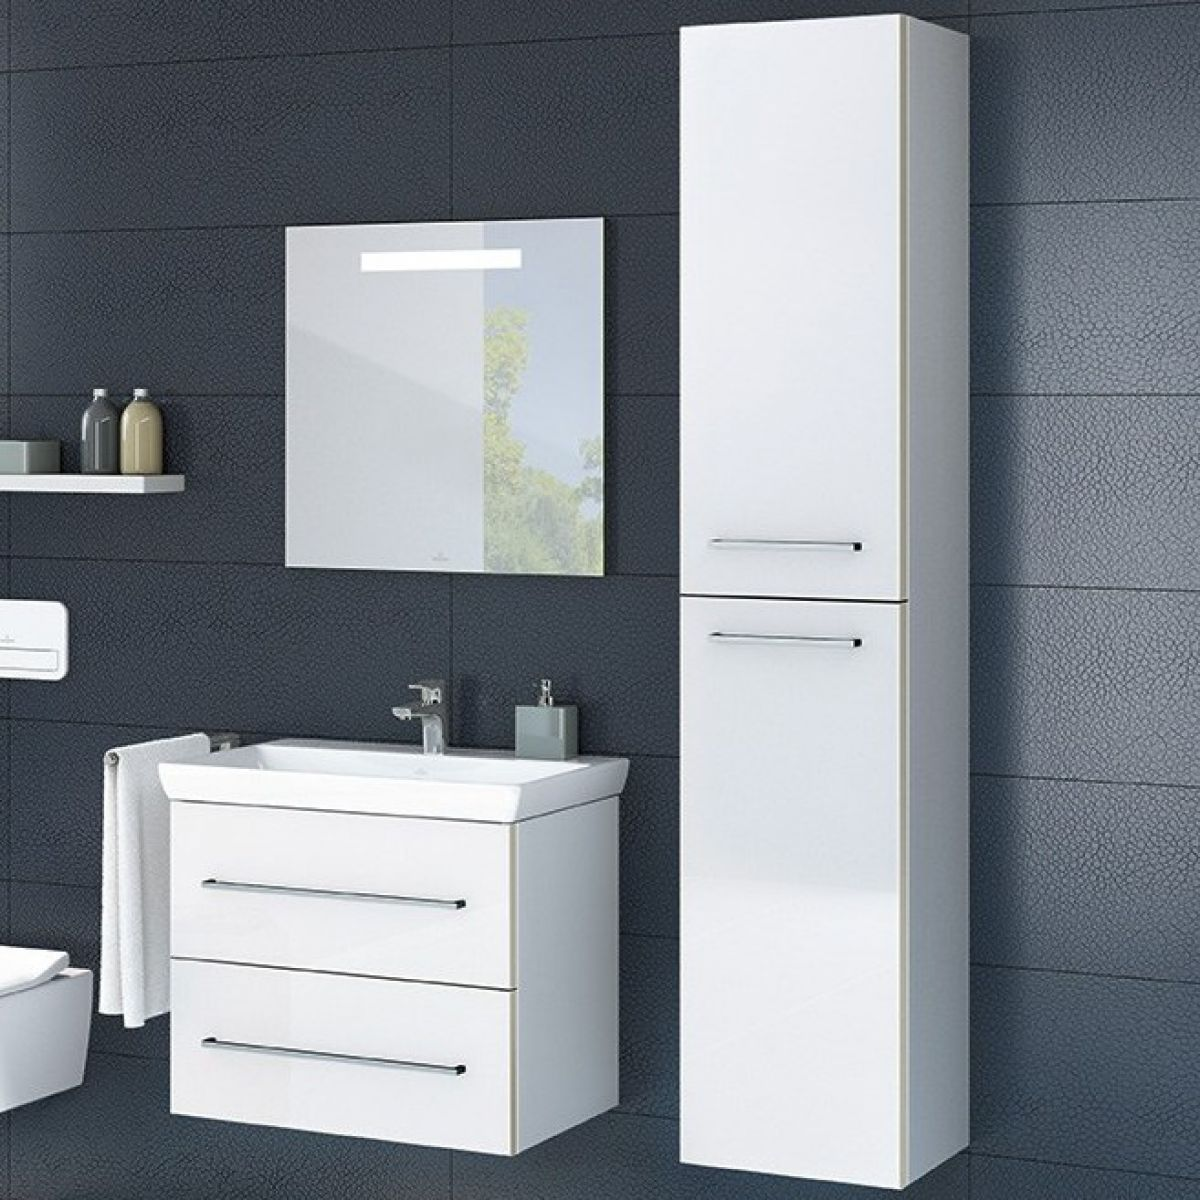 villeroy boch avento tall cabinet uk bathrooms. Black Bedroom Furniture Sets. Home Design Ideas